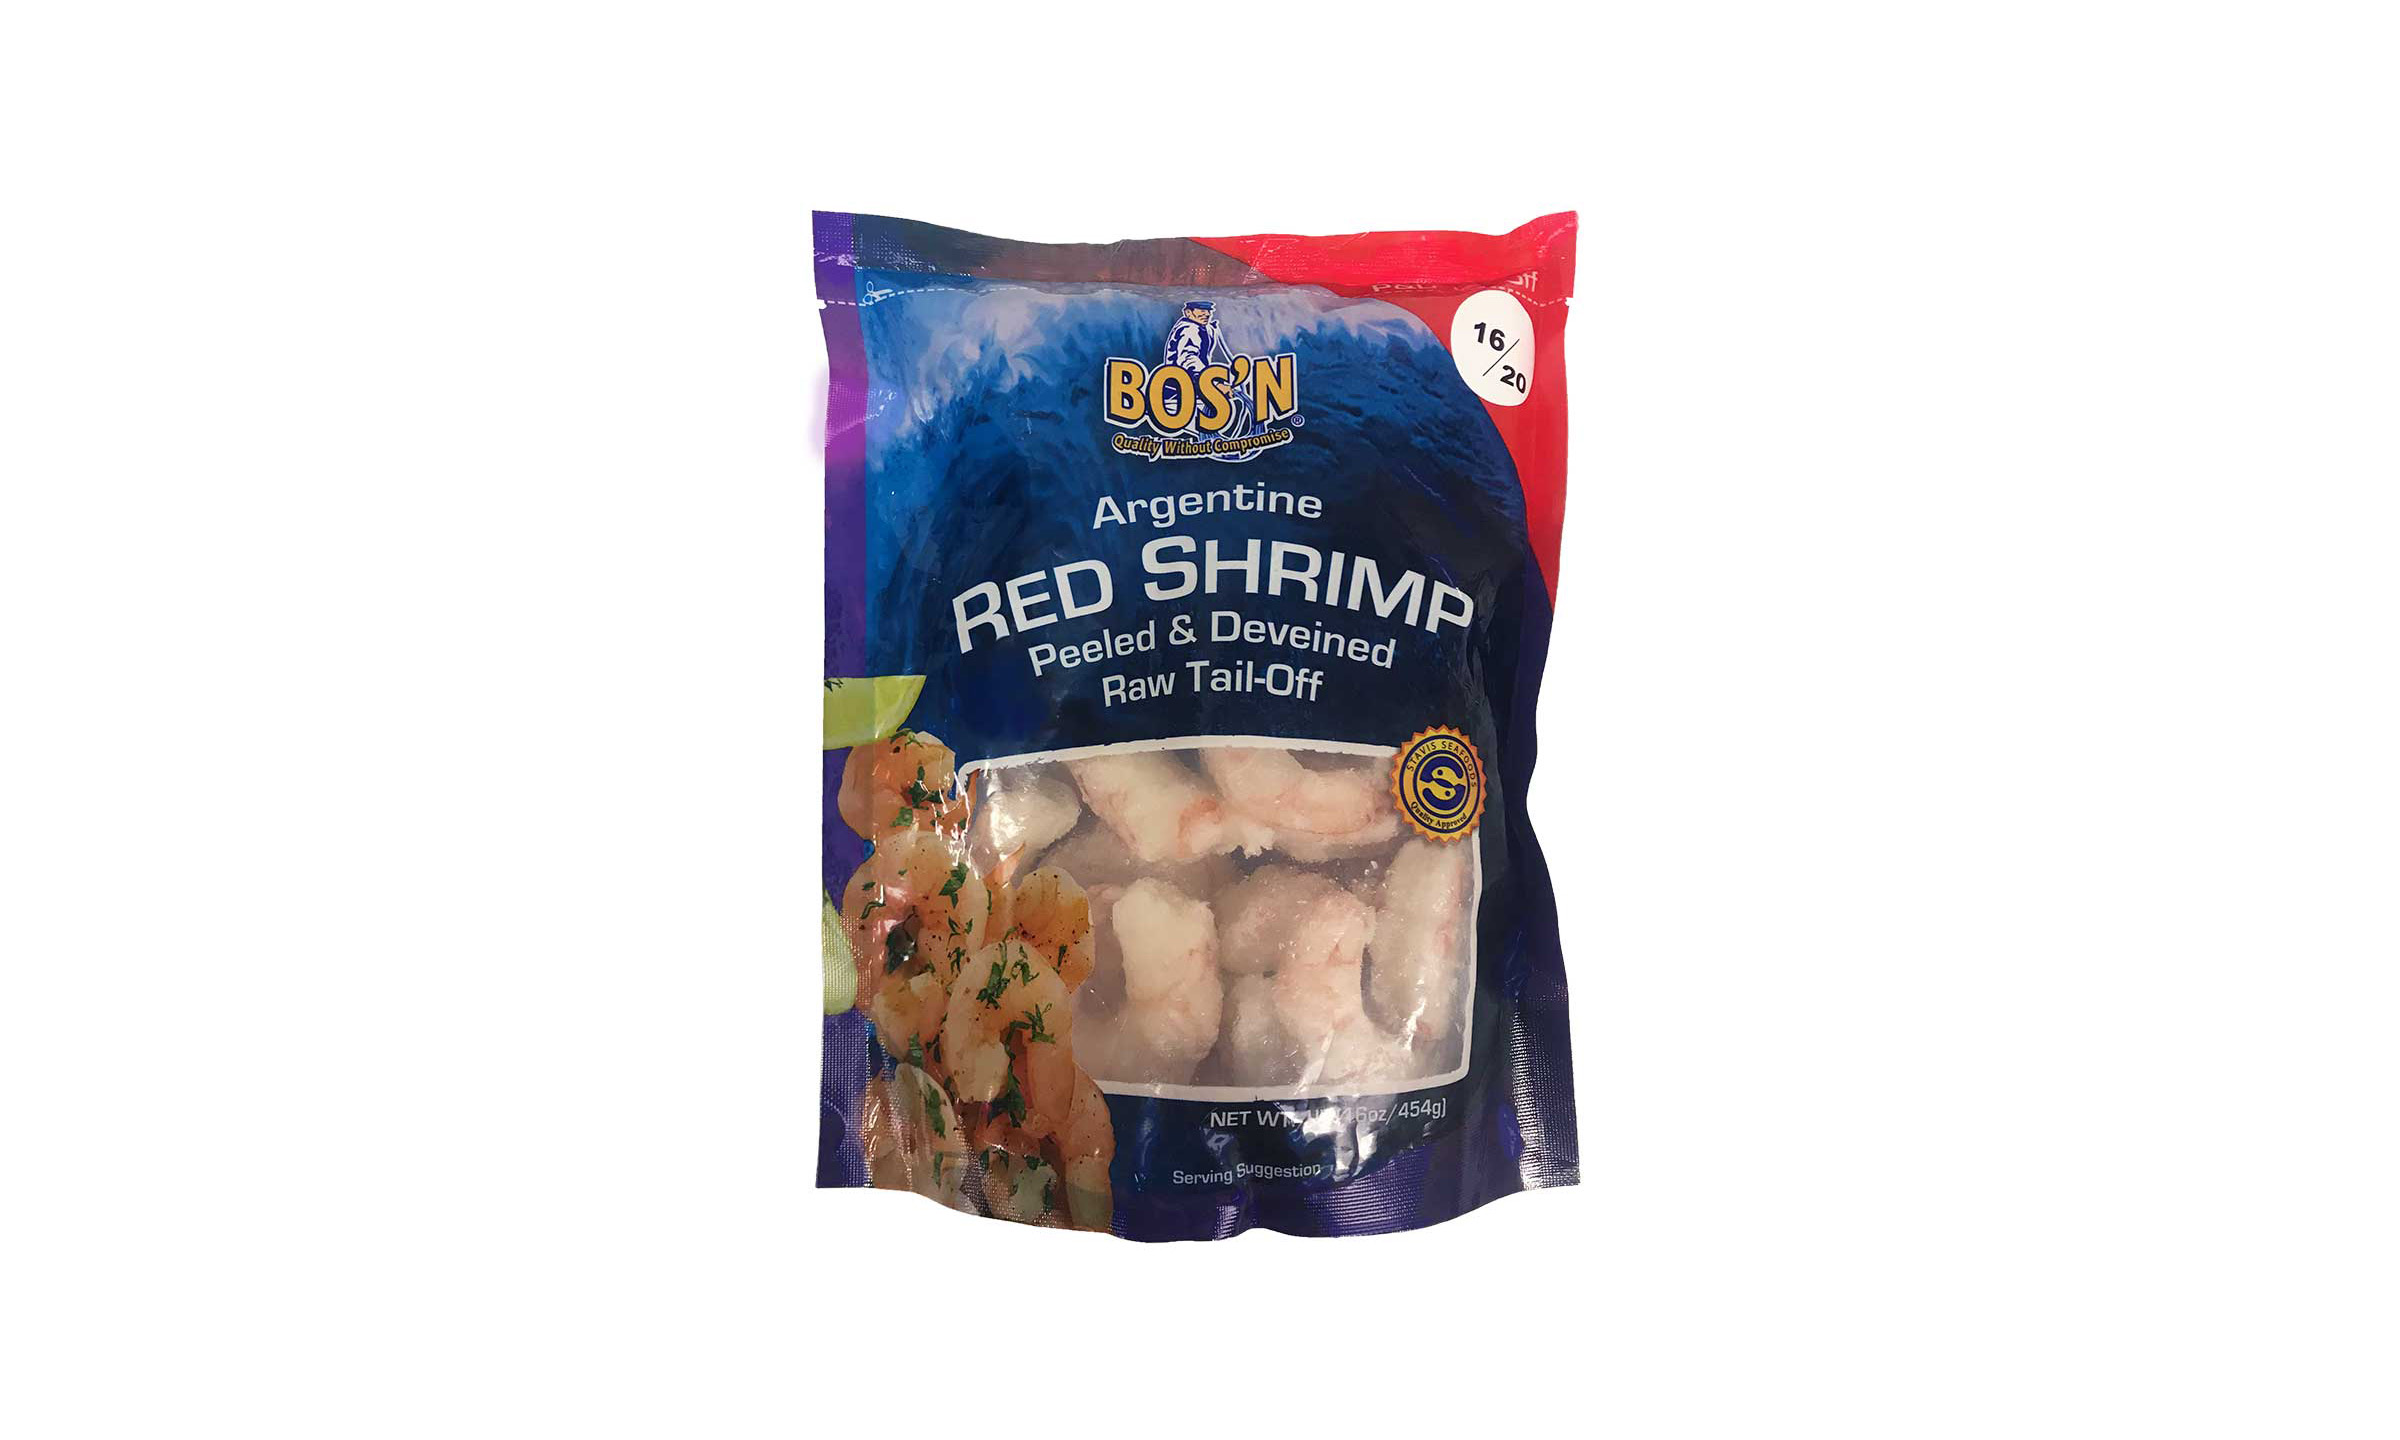 Stavis Seafood Includes Argentine Red Shrimp In Bos N Line